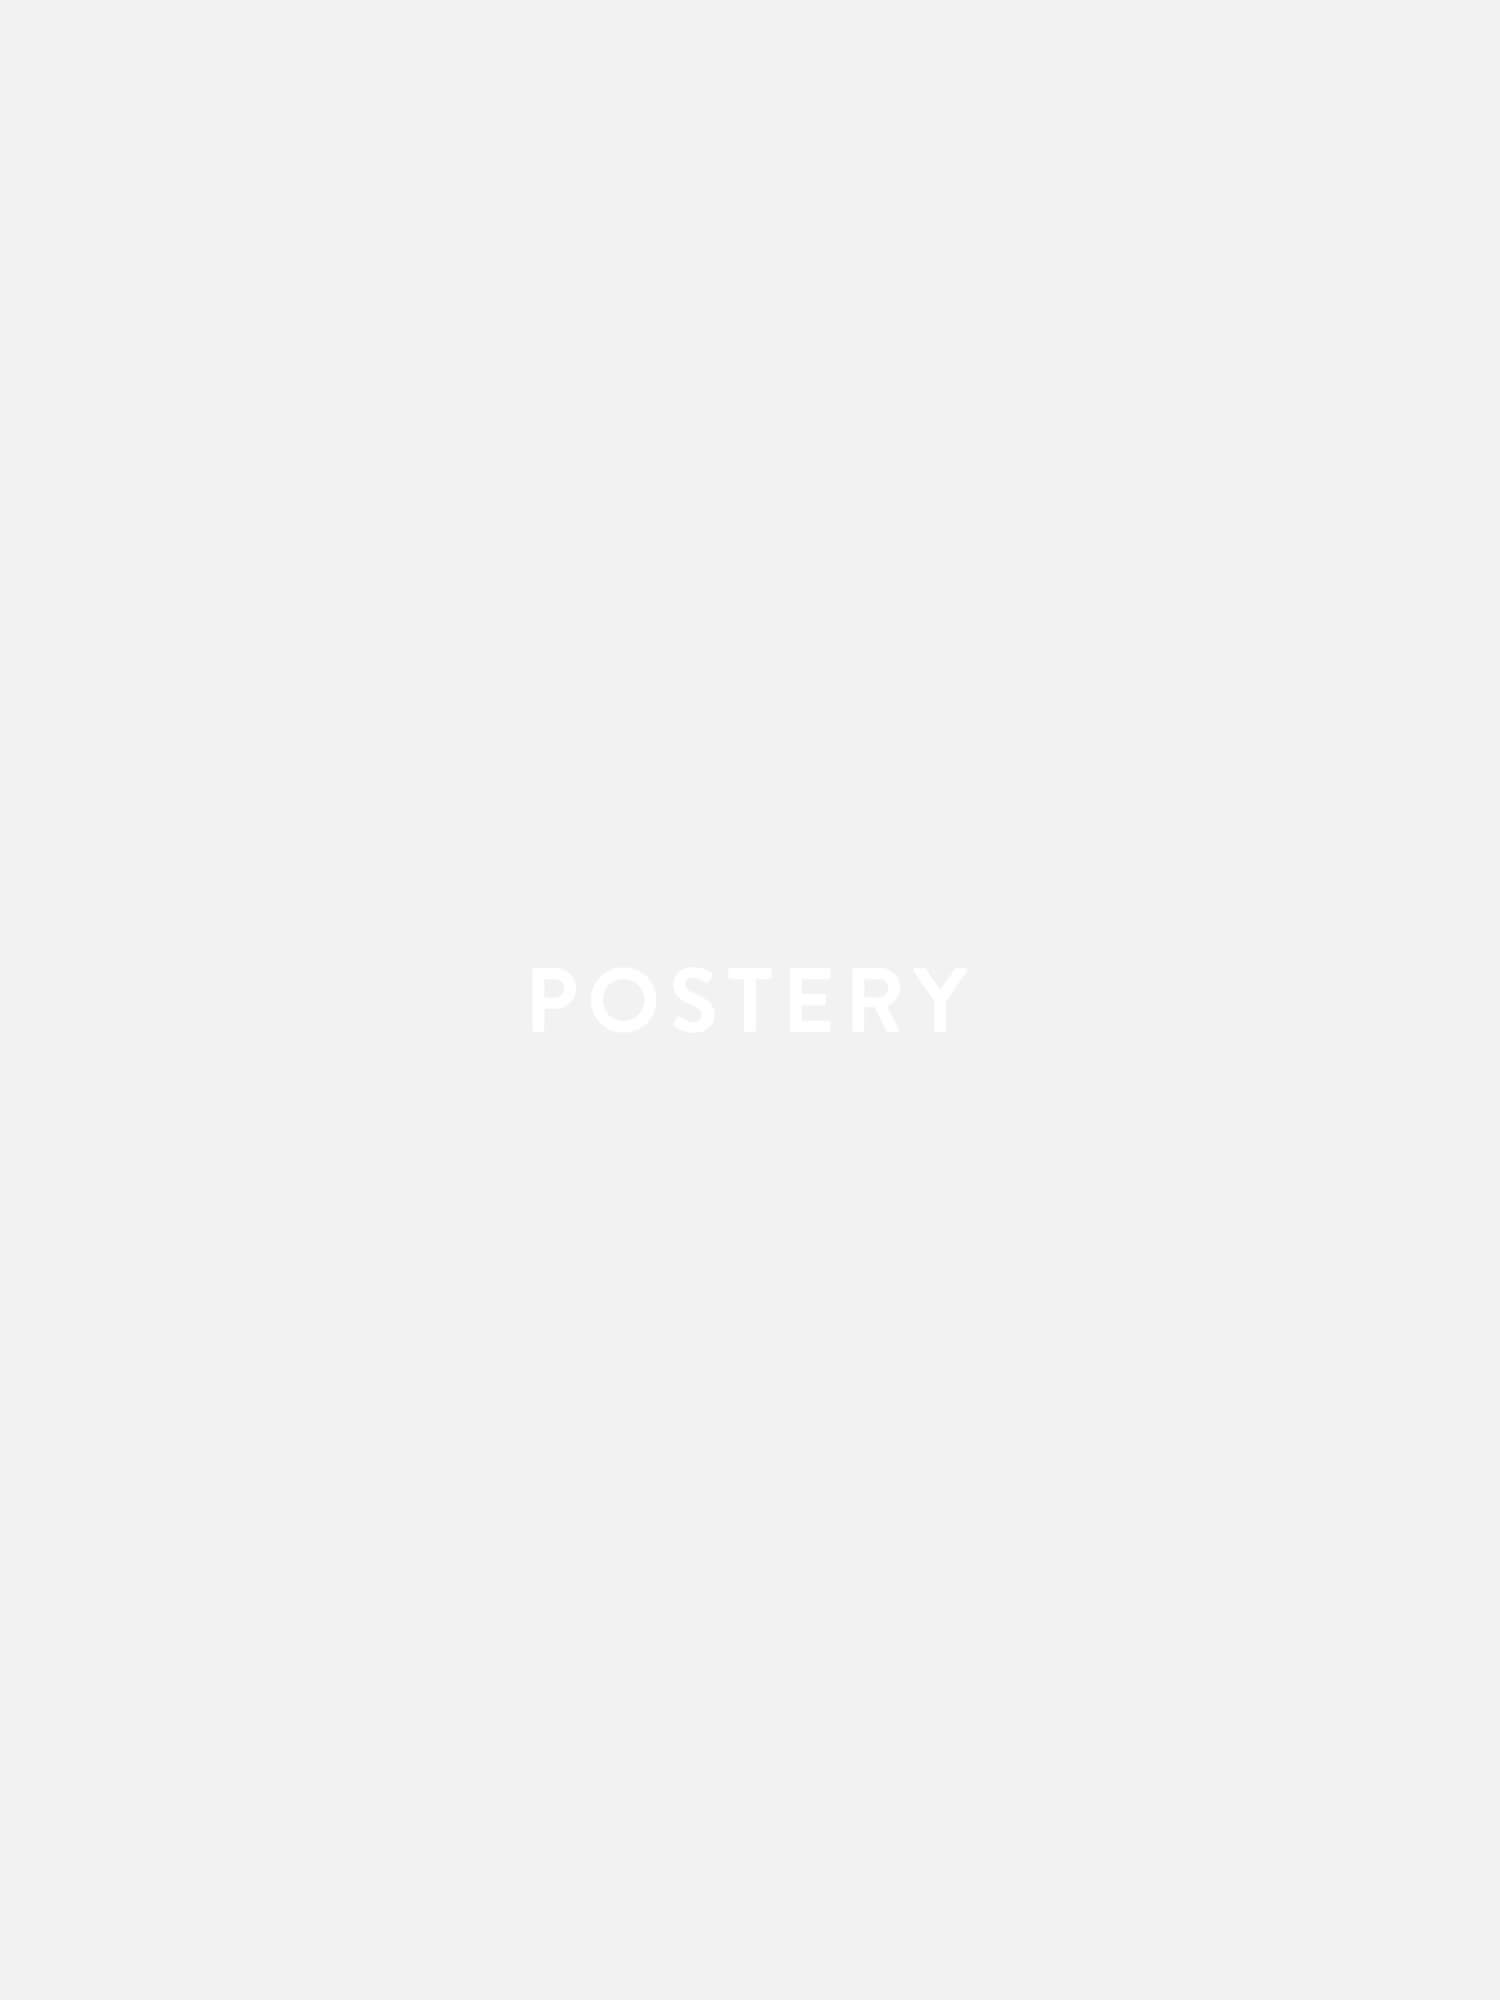 Maybe Later Poster